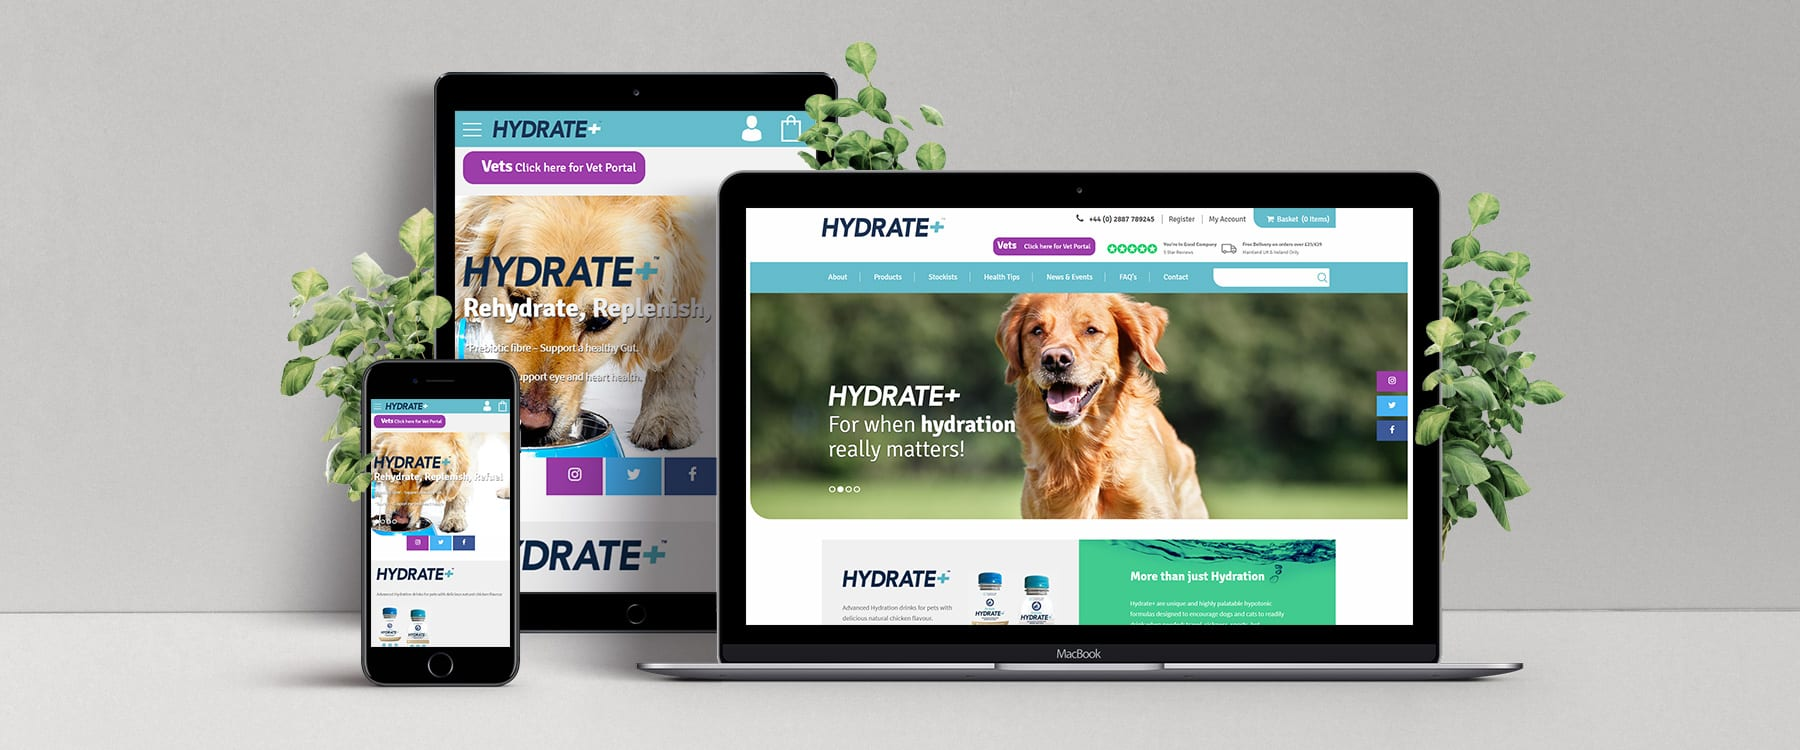 Oralade Pet Launch New eCommerce Website Image